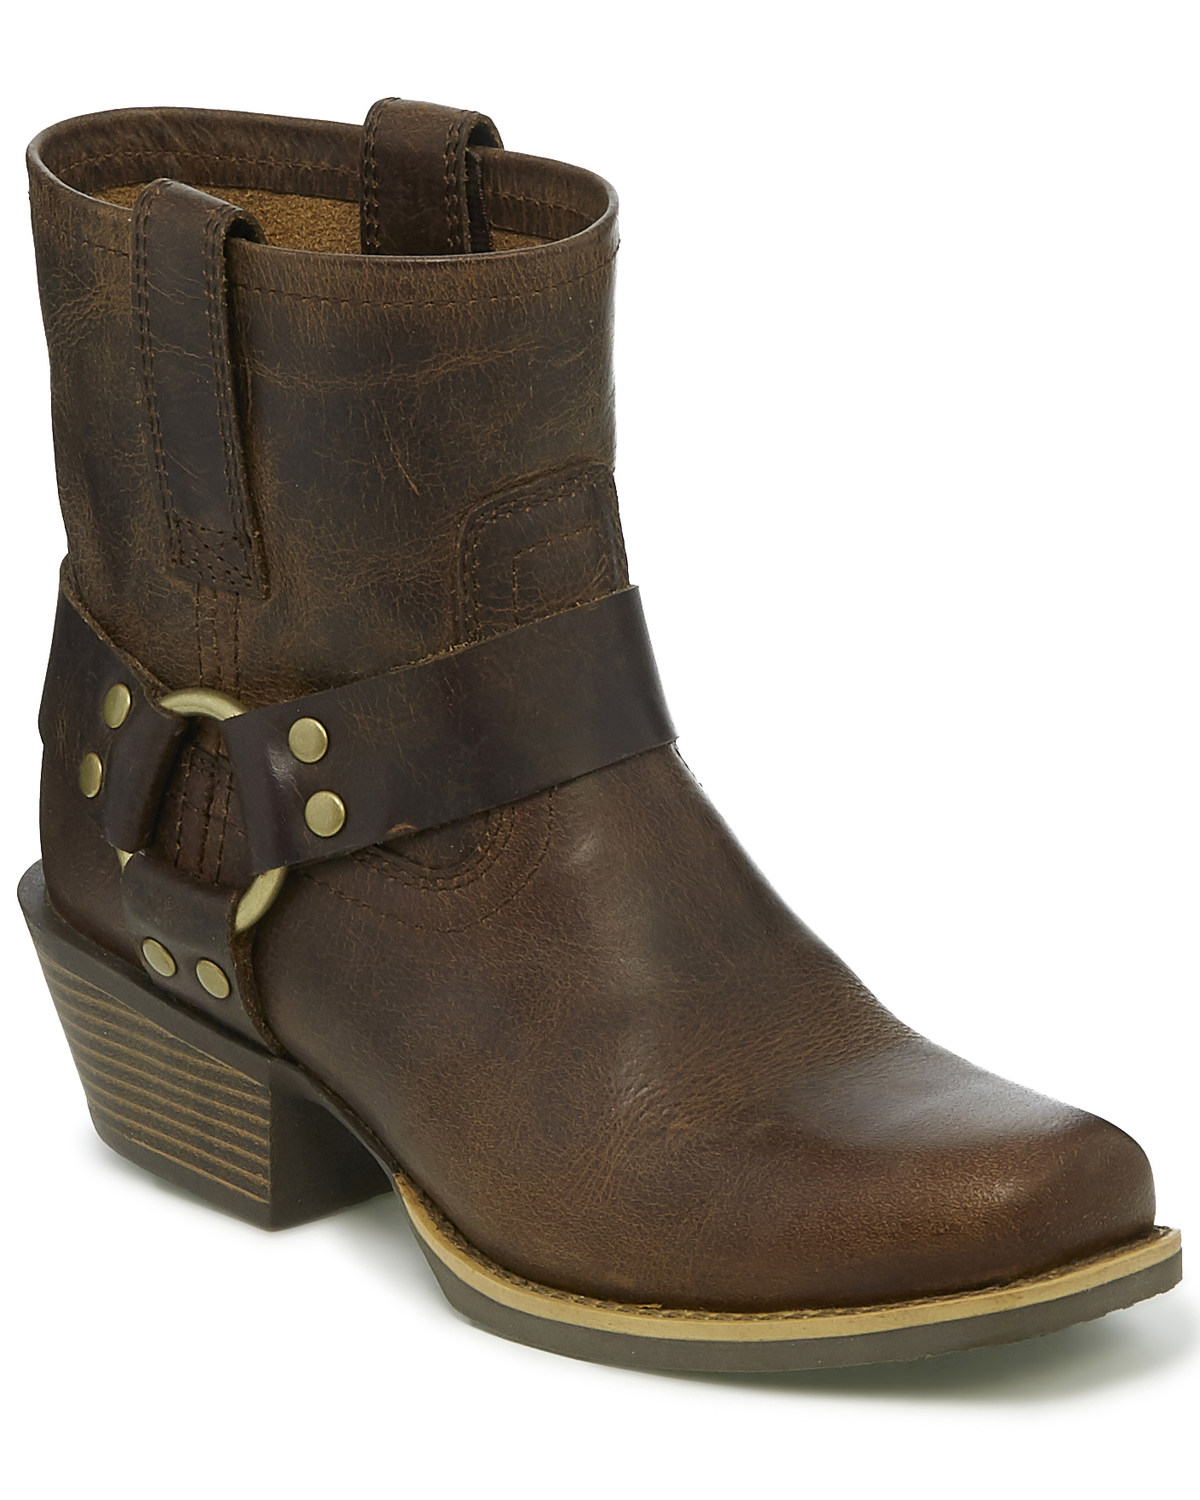 online store 332c9 3355a Justin Women's Heritage Buffalo Moto Boots - Square Toe